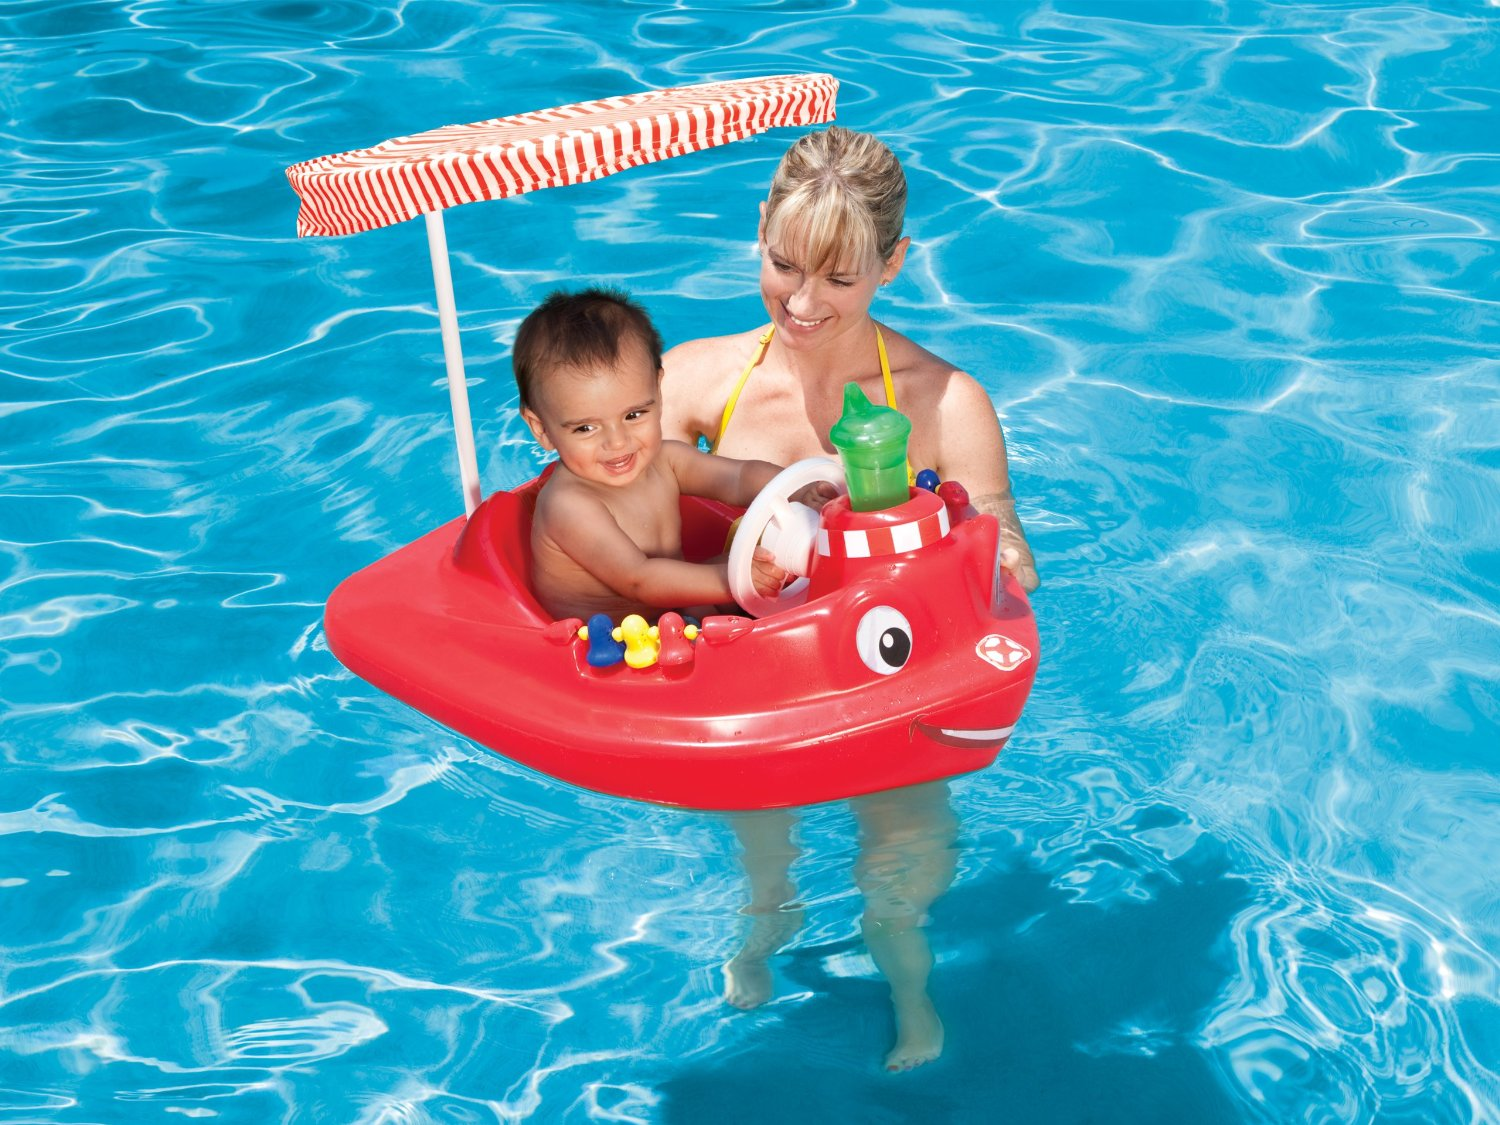 Swimways Baby Tug Boat For Pool 54 99 From 79 99